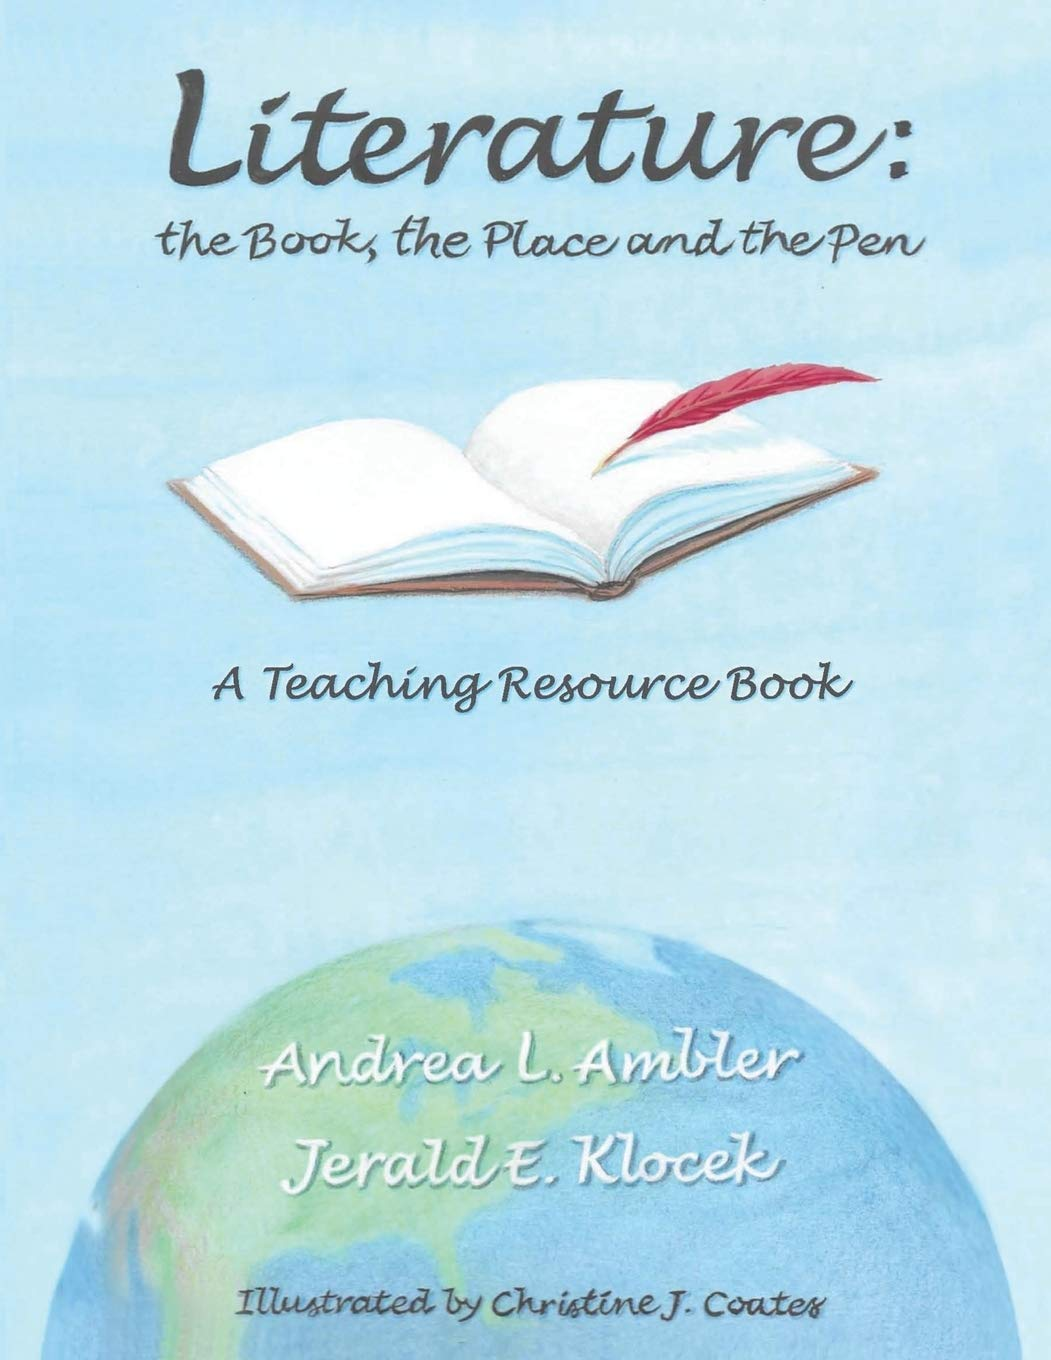 Literature: The Book, the Place and the Pen--A Teaching Resource Book